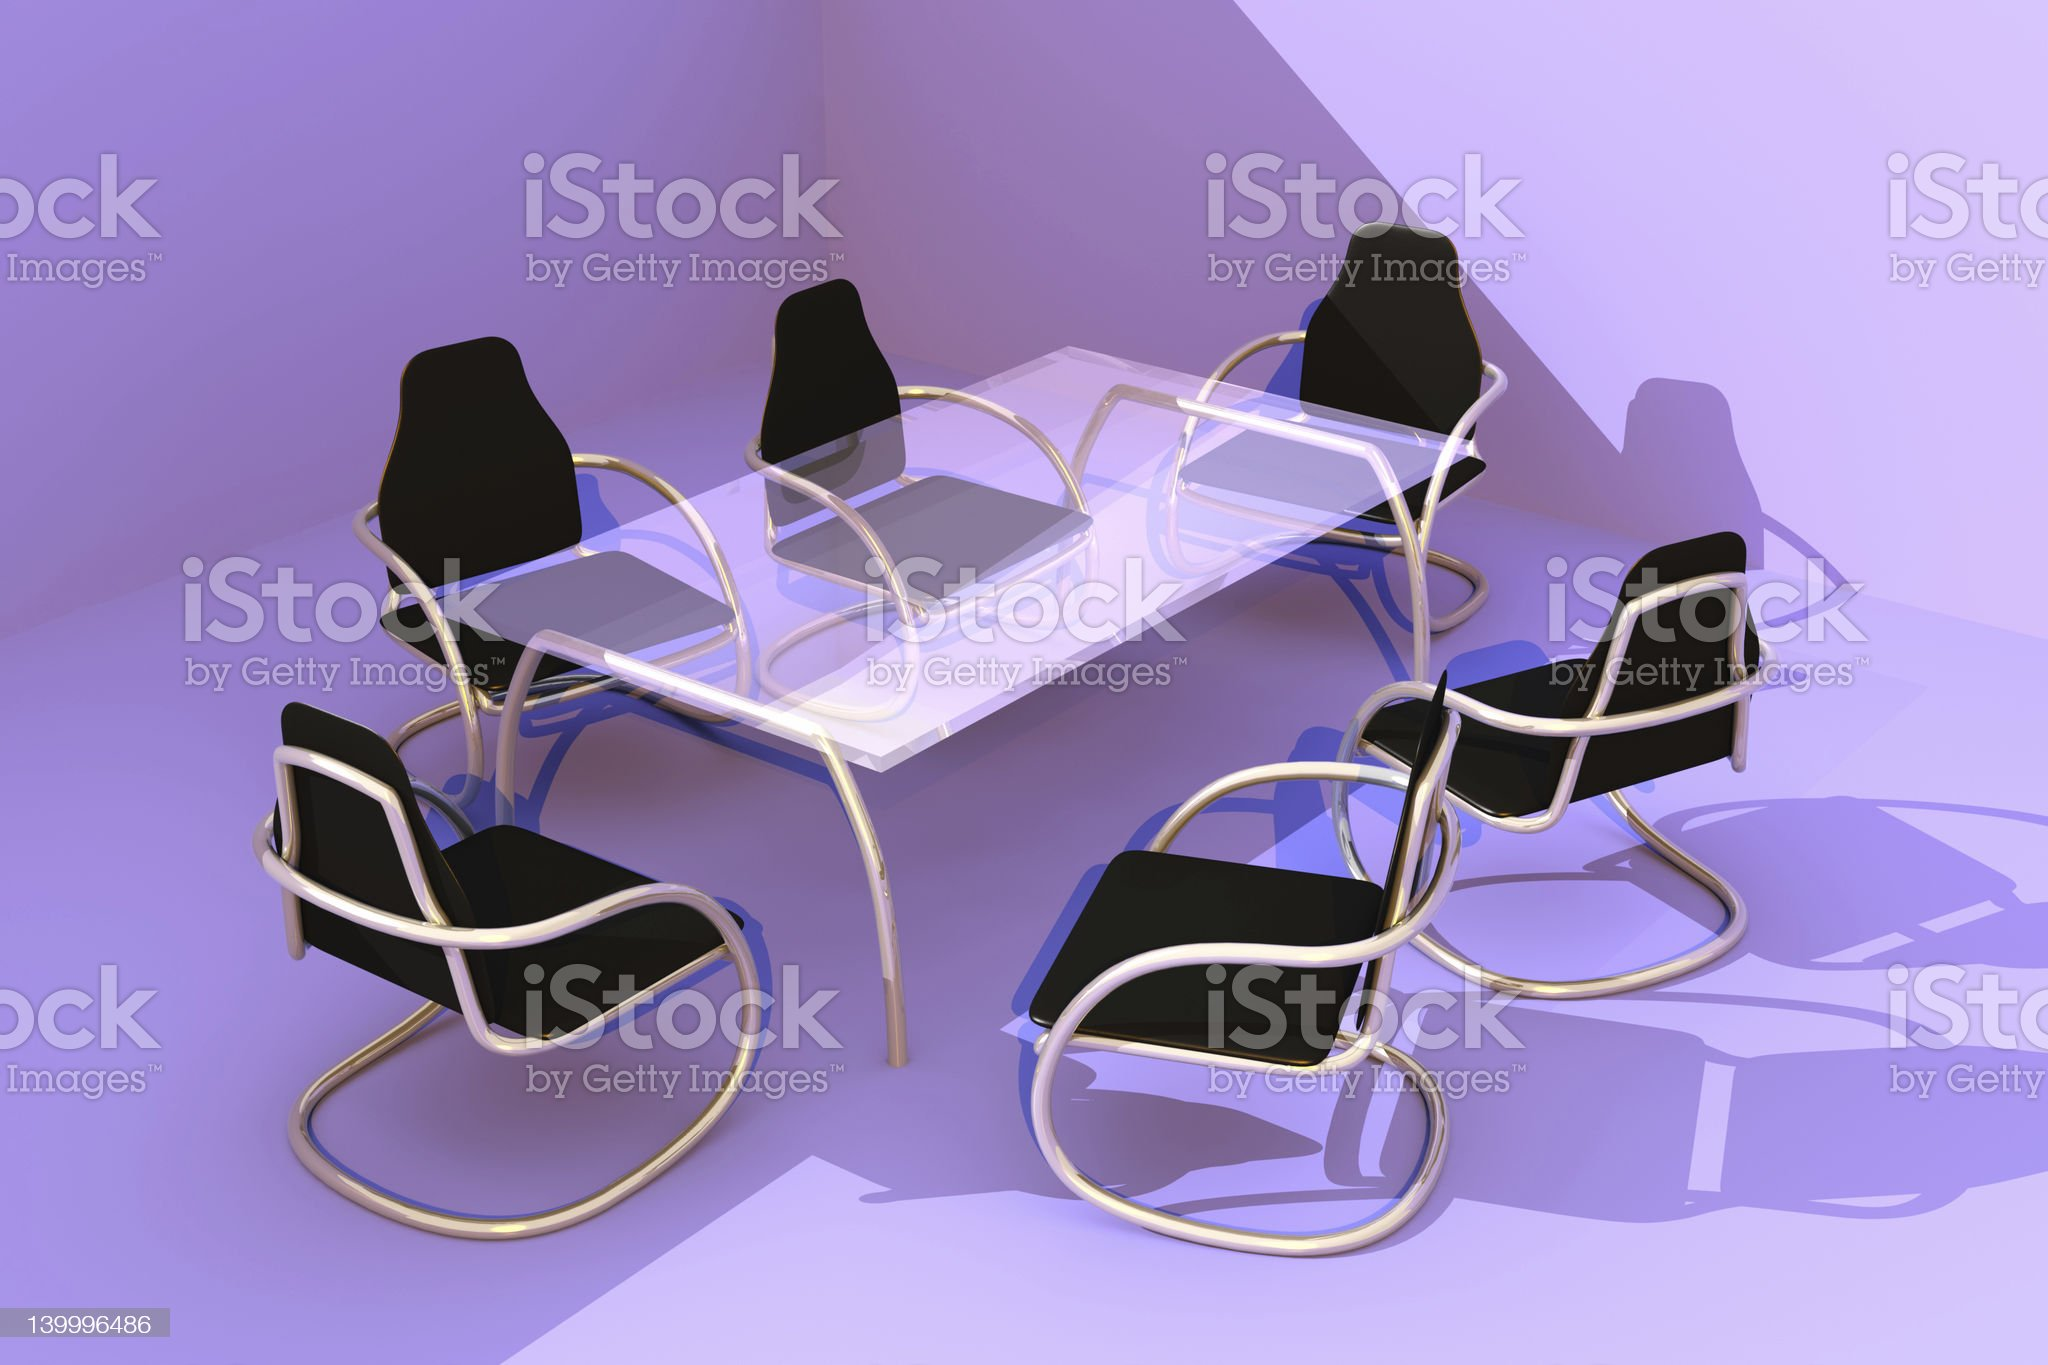 Design Table and Chairs royalty-free stock photo